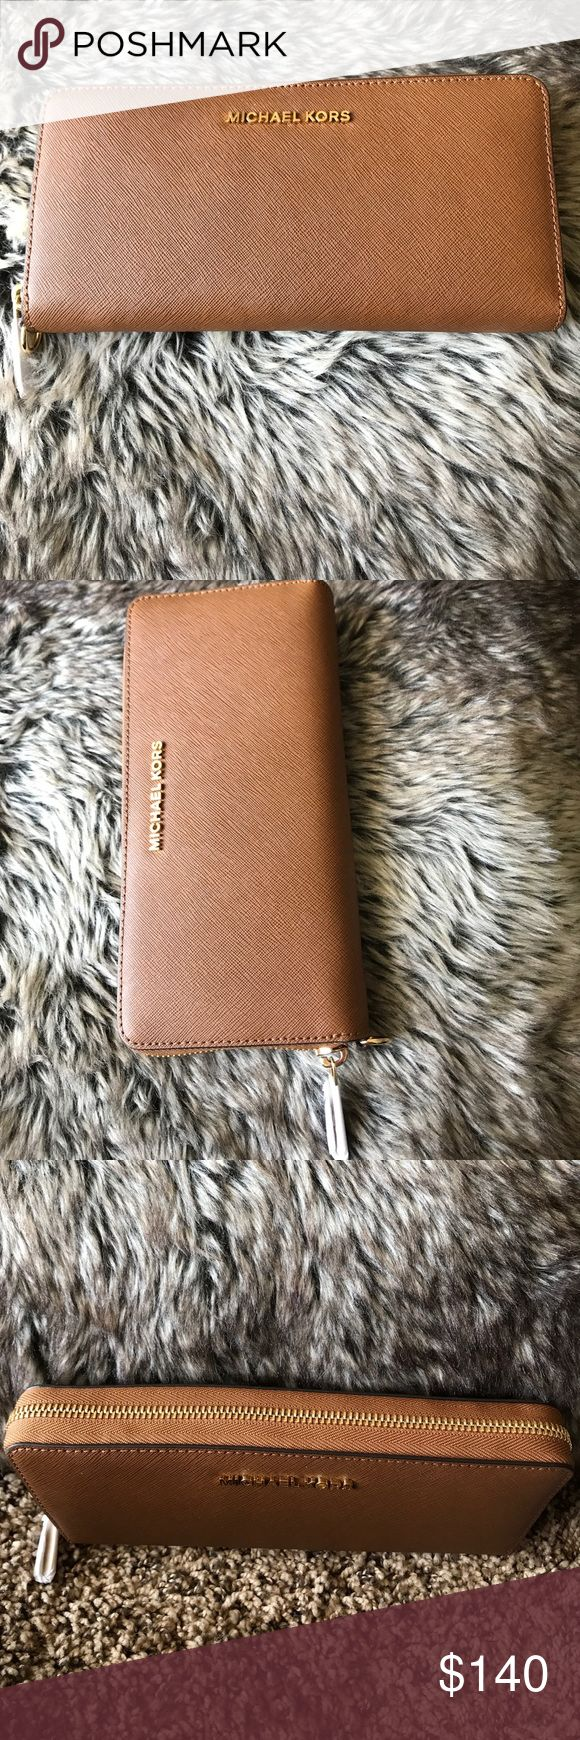 Michael Kors jet travel luggage continent leather 💯 Authentic Michael Kors jet set travel luggage continental leather wallet. Michael Kors Bags Wallets